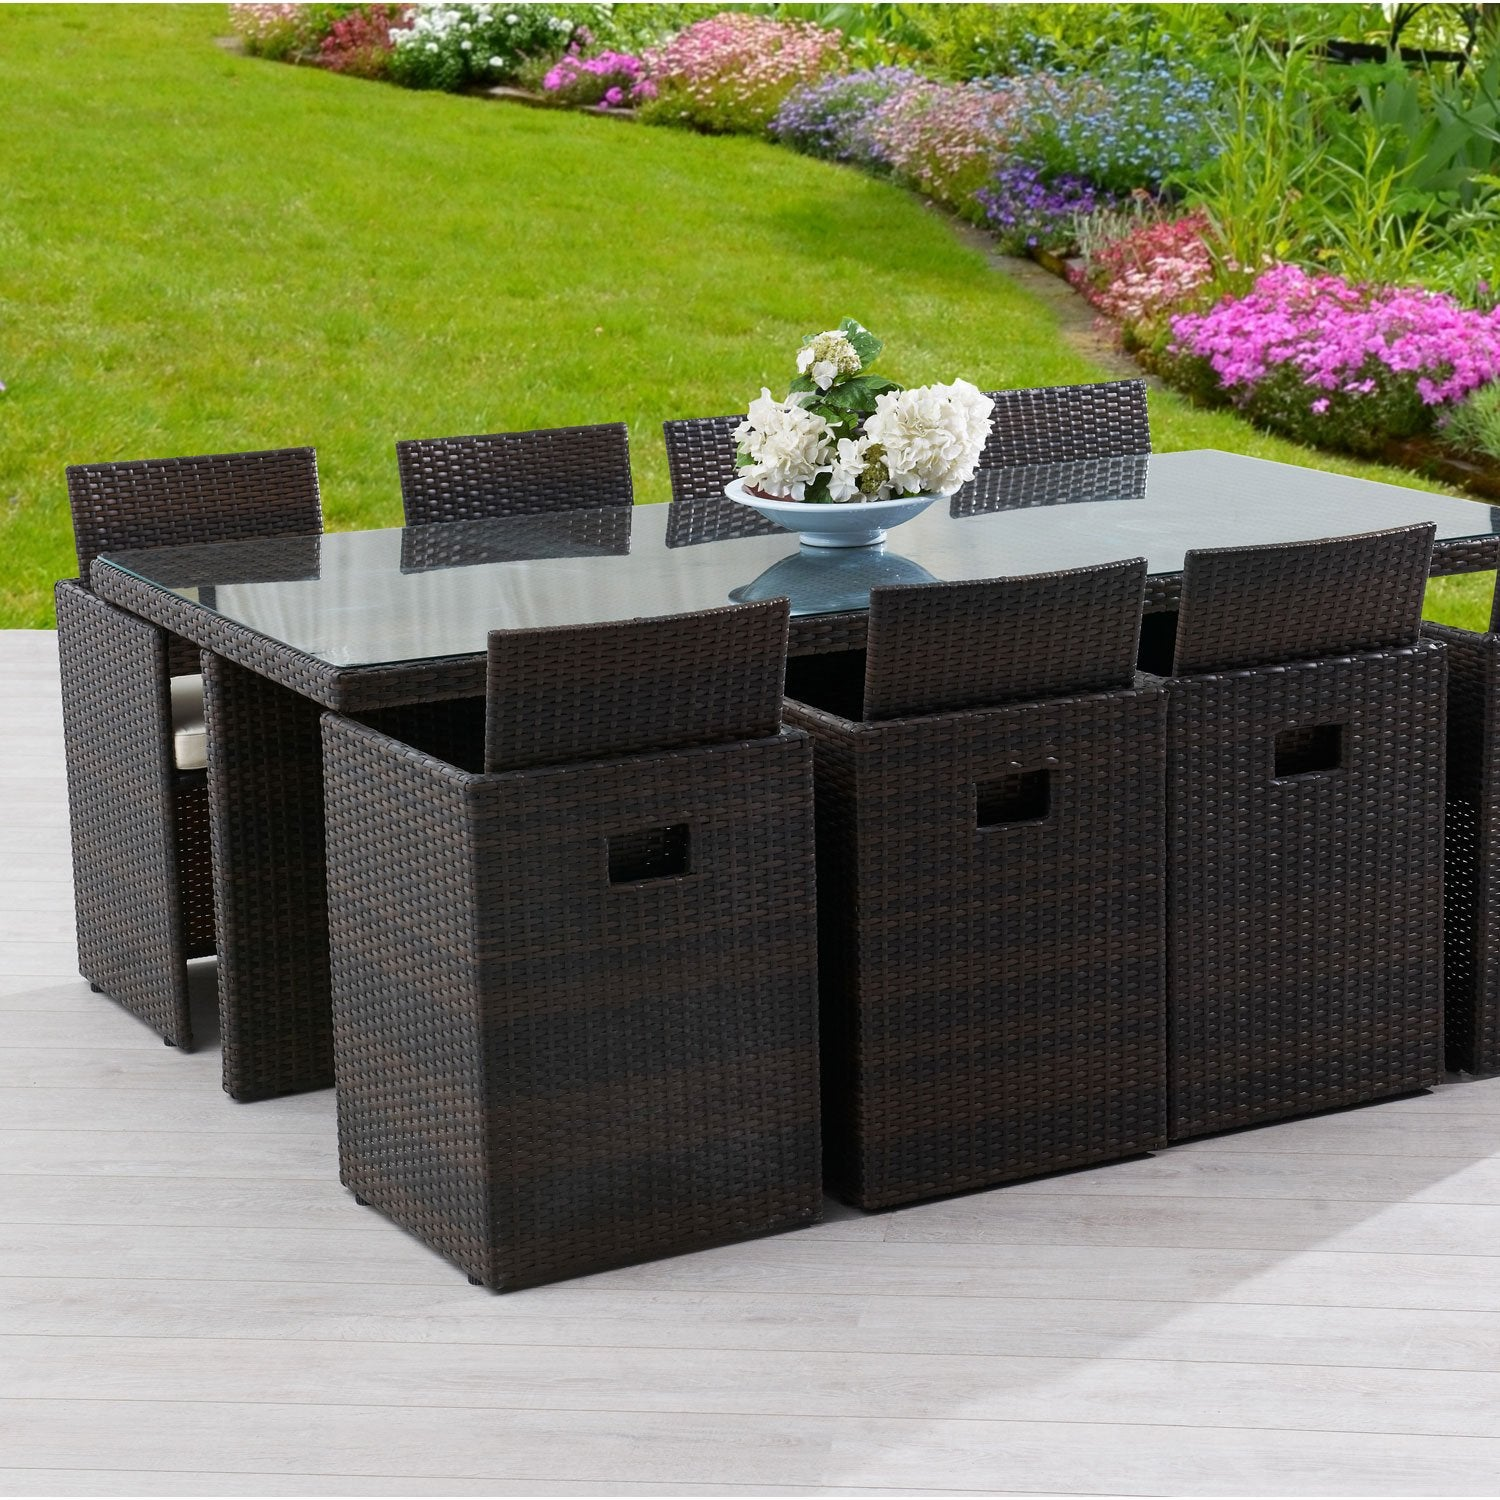 salon de jardin exterieur pas cher. Black Bedroom Furniture Sets. Home Design Ideas